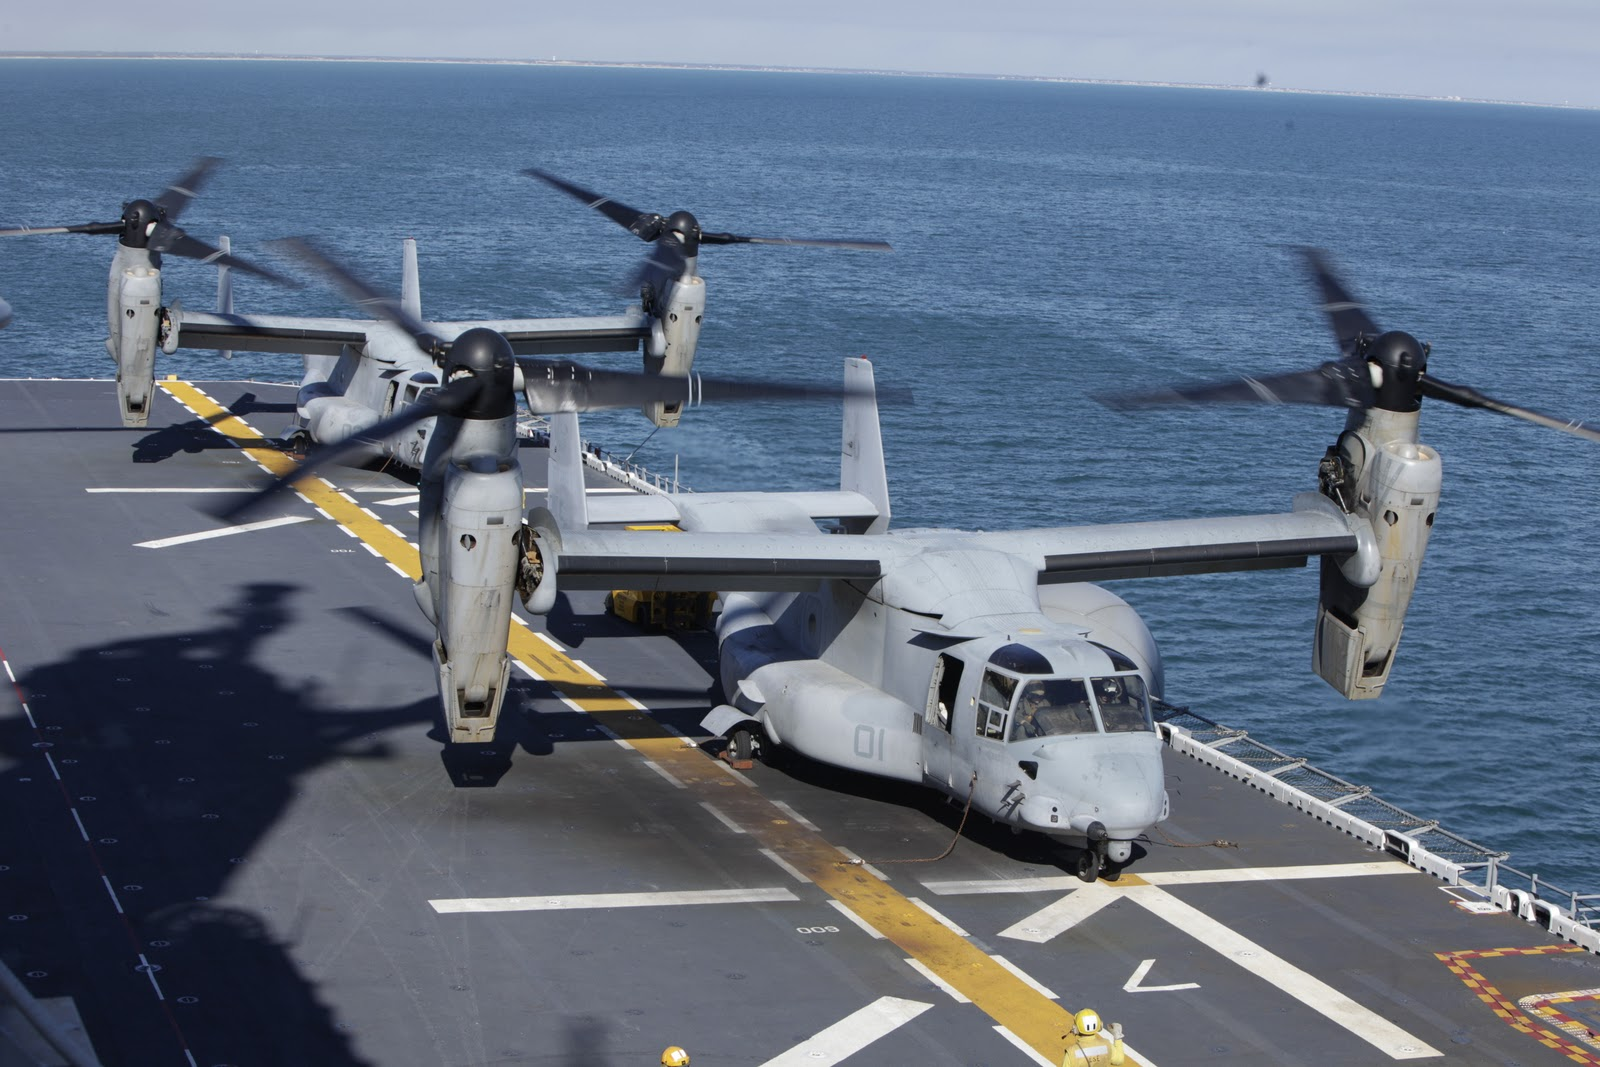 an analysis and the evolution of the hybrid airplane and helicopter v 22 osprey The v-22 osprey program is one of the largest scandals in the us military some 40 years ago, the marines expressed a desire for an airplane that could land and take-off vertically like a helicopter.